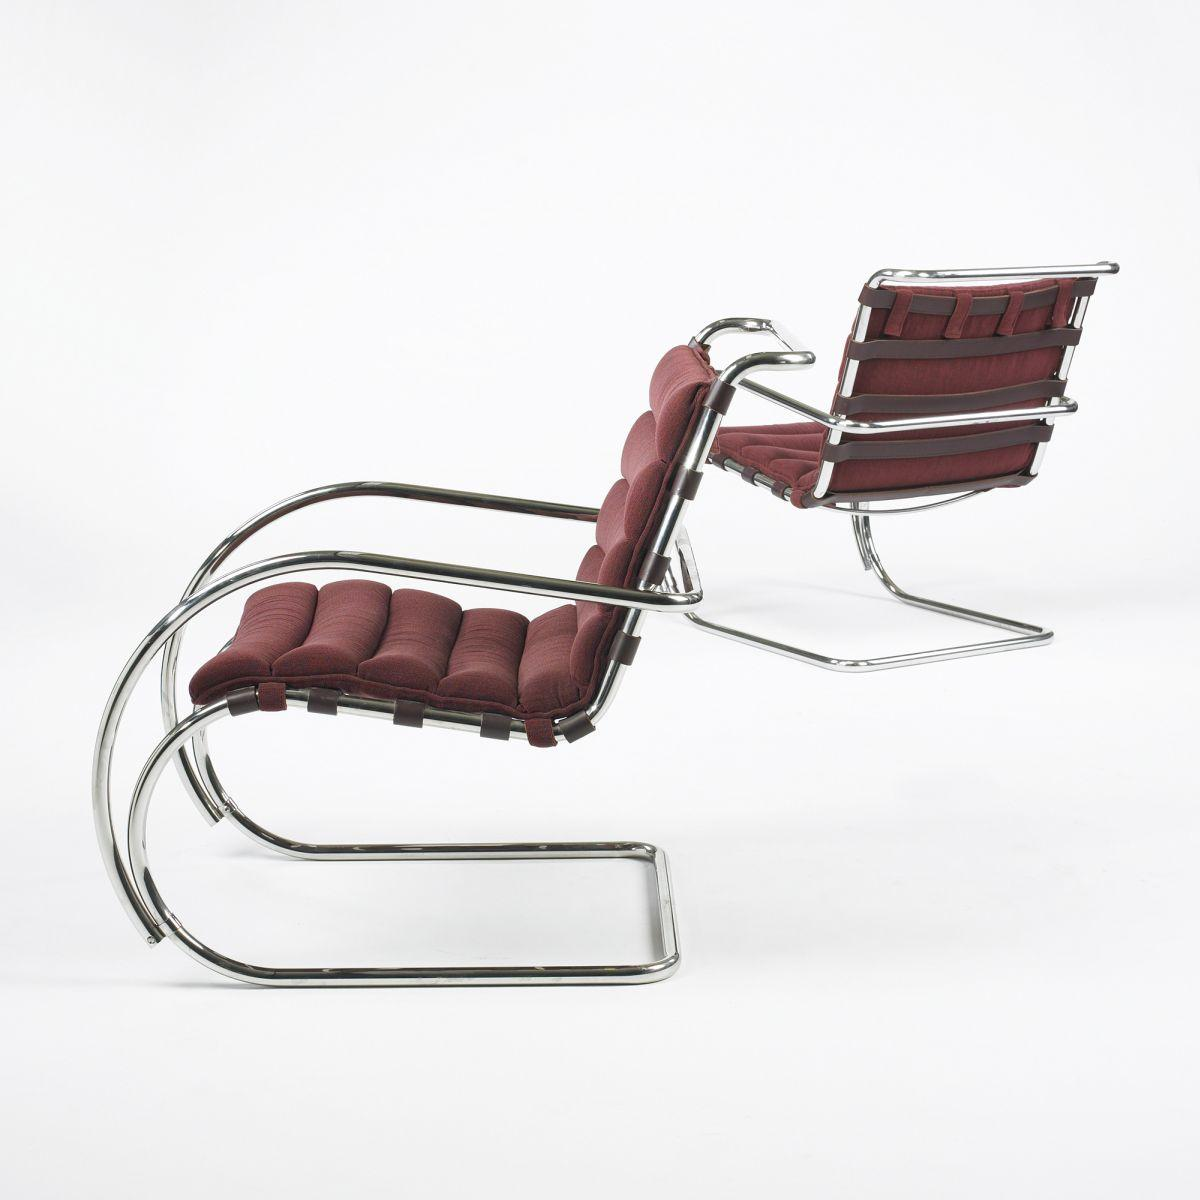 Enjoyable Ludwig Mies Van Der Rohe Mr Lounge Chairs Pair Squirreltailoven Fun Painted Chair Ideas Images Squirreltailovenorg